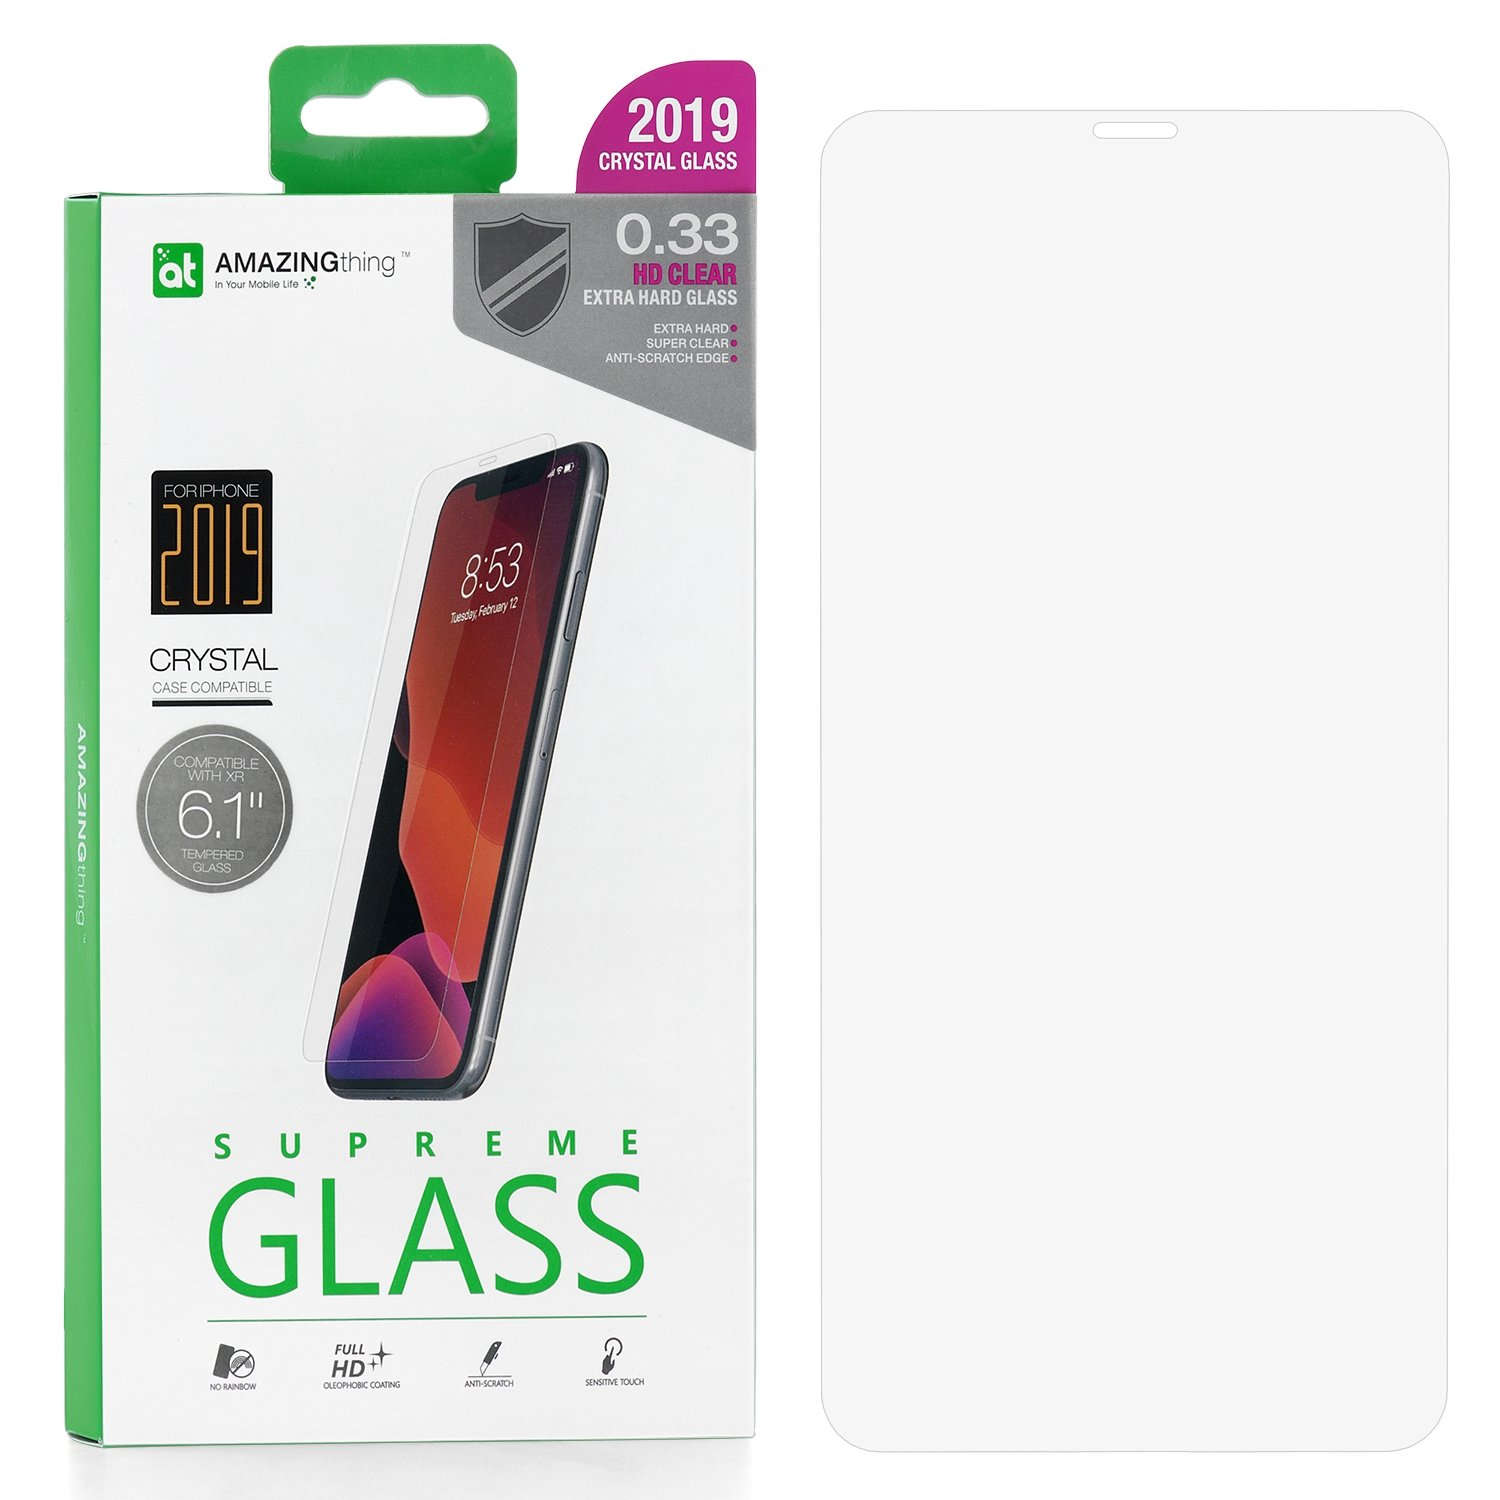 Защитное стекло AMAZINGthing SupremeGlass Extra Hard 0.33mm для Apple iPhone XR